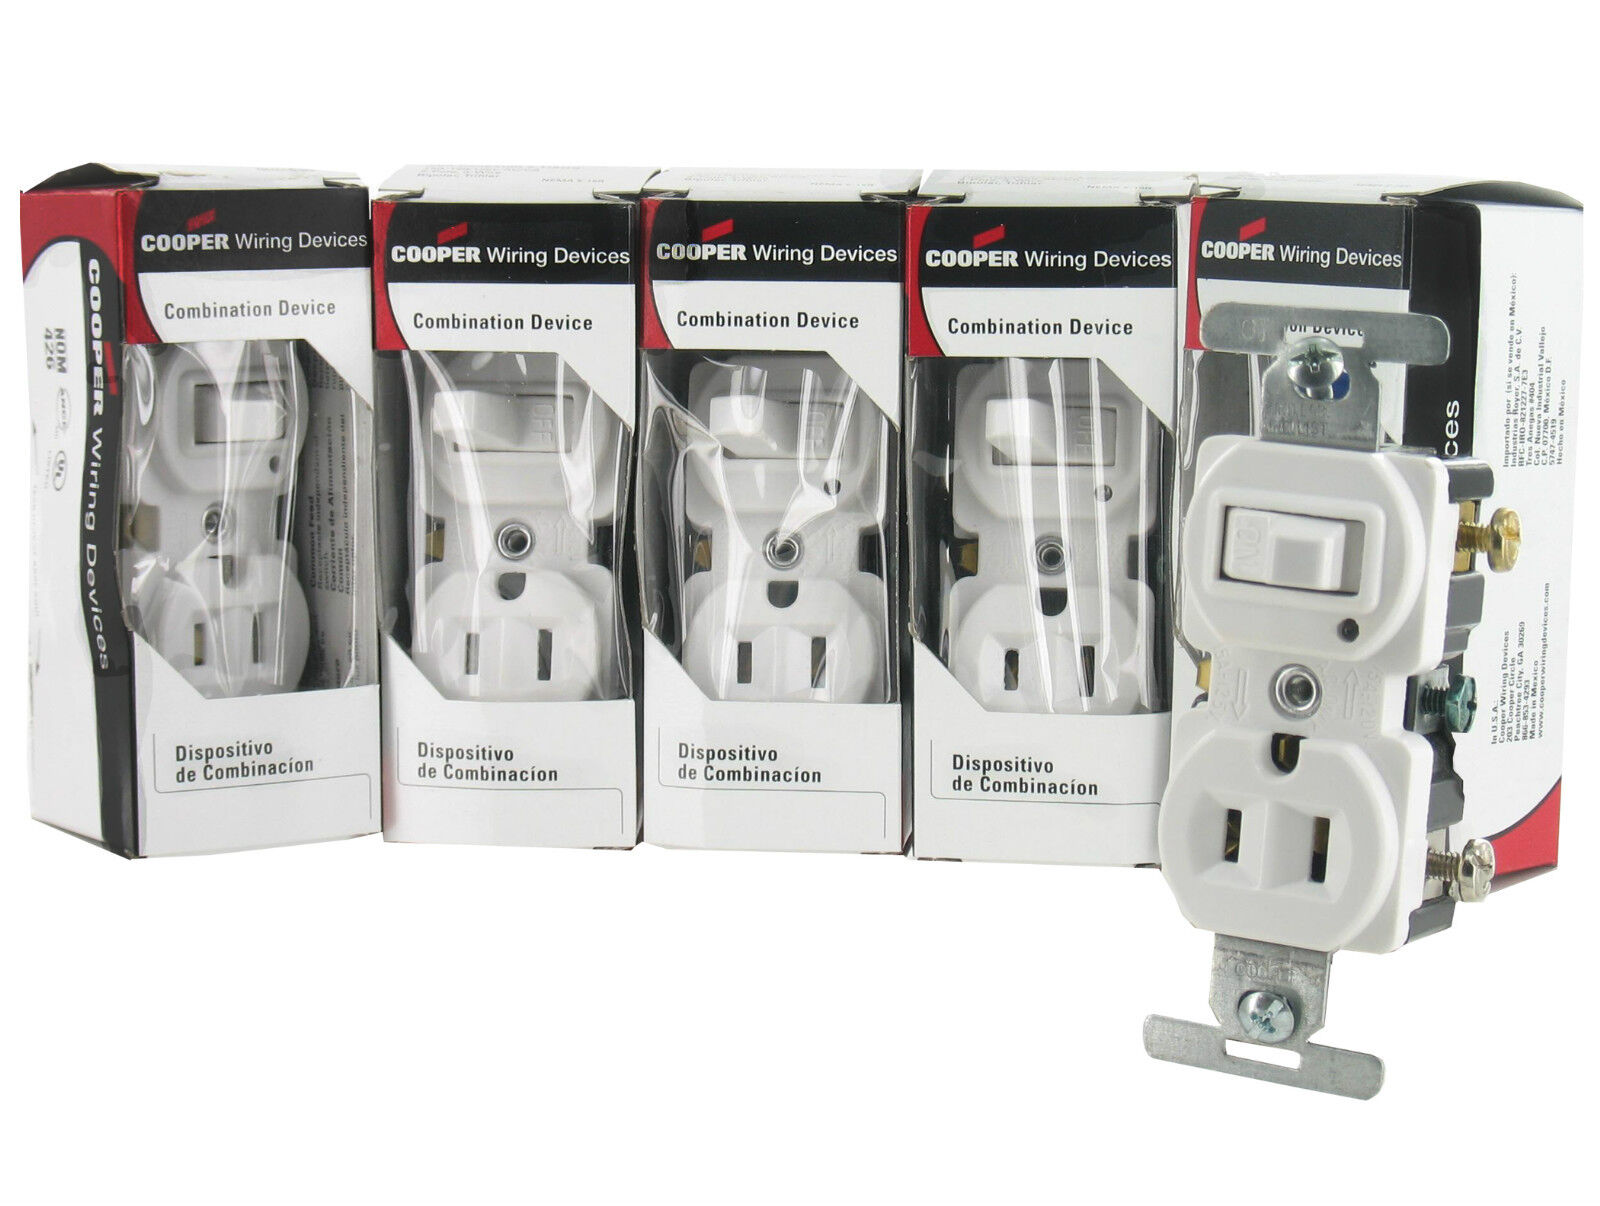 LOT 5 COOPER 274 White Combination Toggle Switch NEMA 5-15 Outlet ...